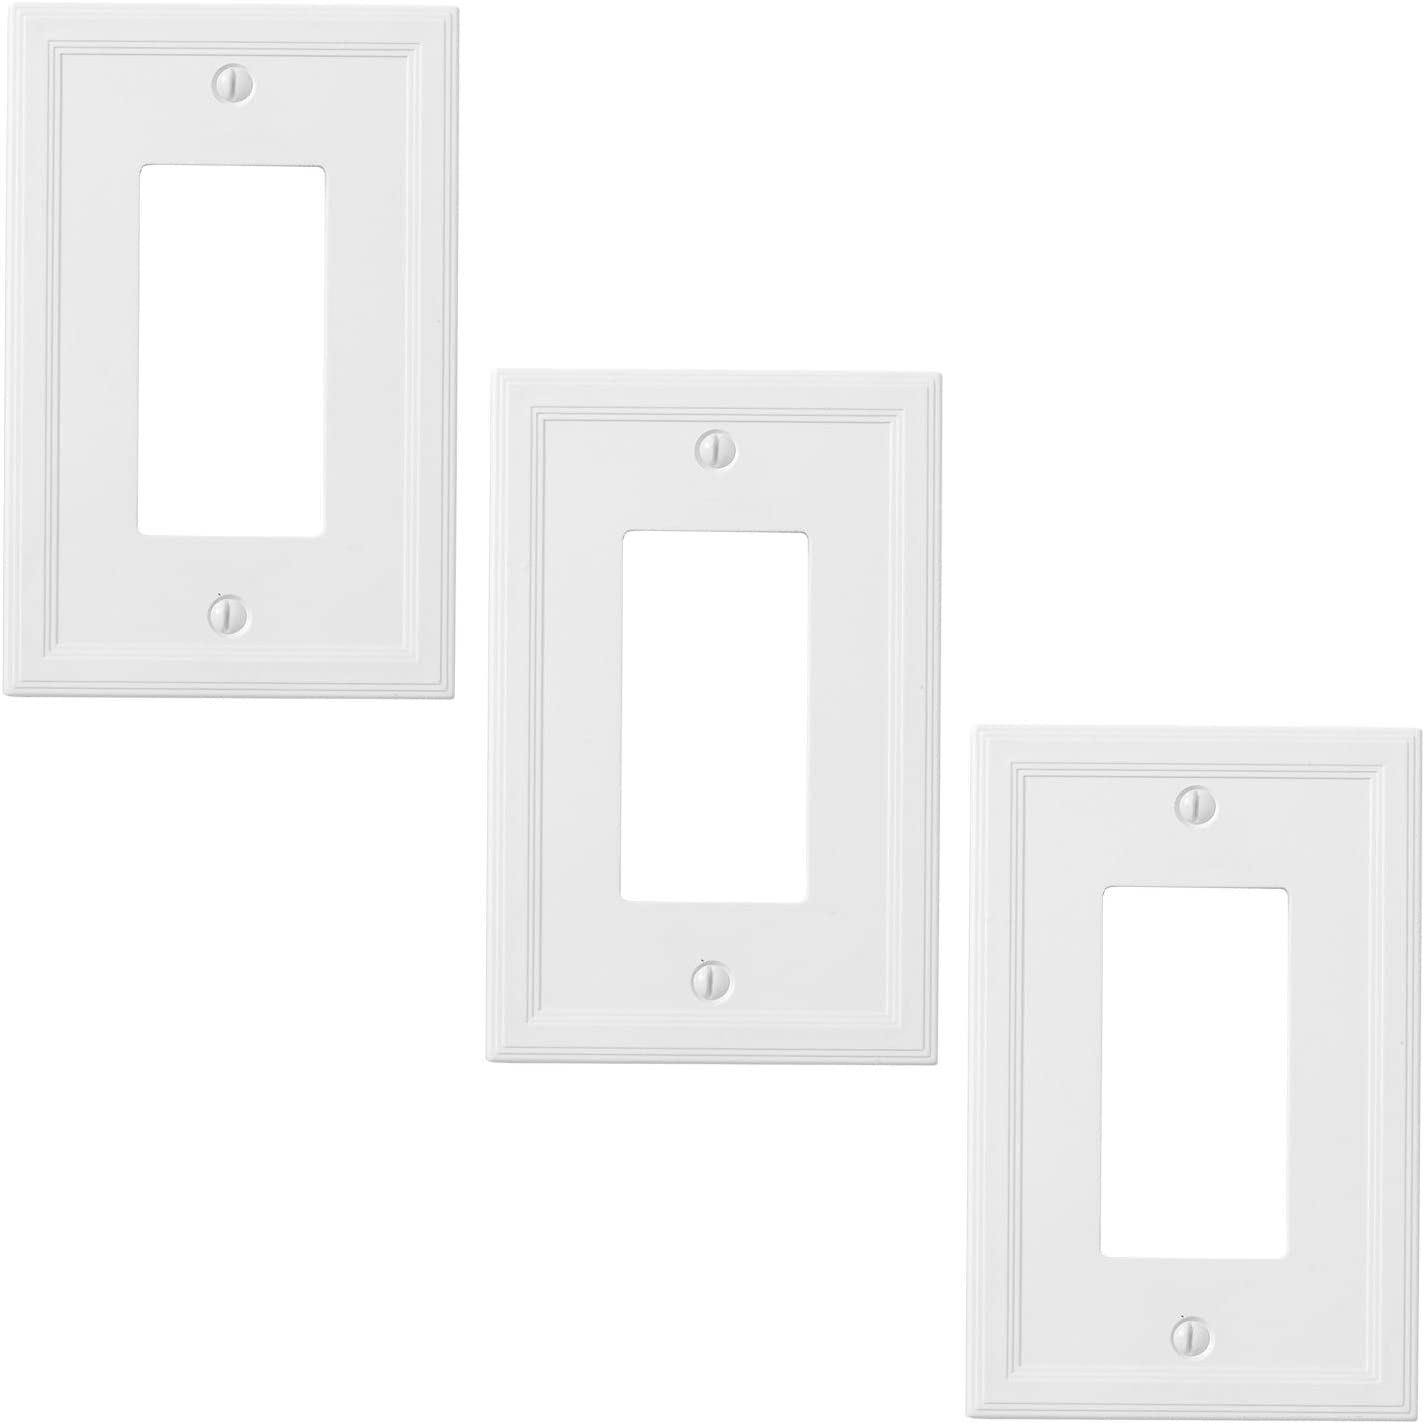 Insulated Single Rocker 3 Pack - White Light Switch Cover Decorative Outlet Cover Wall Plate